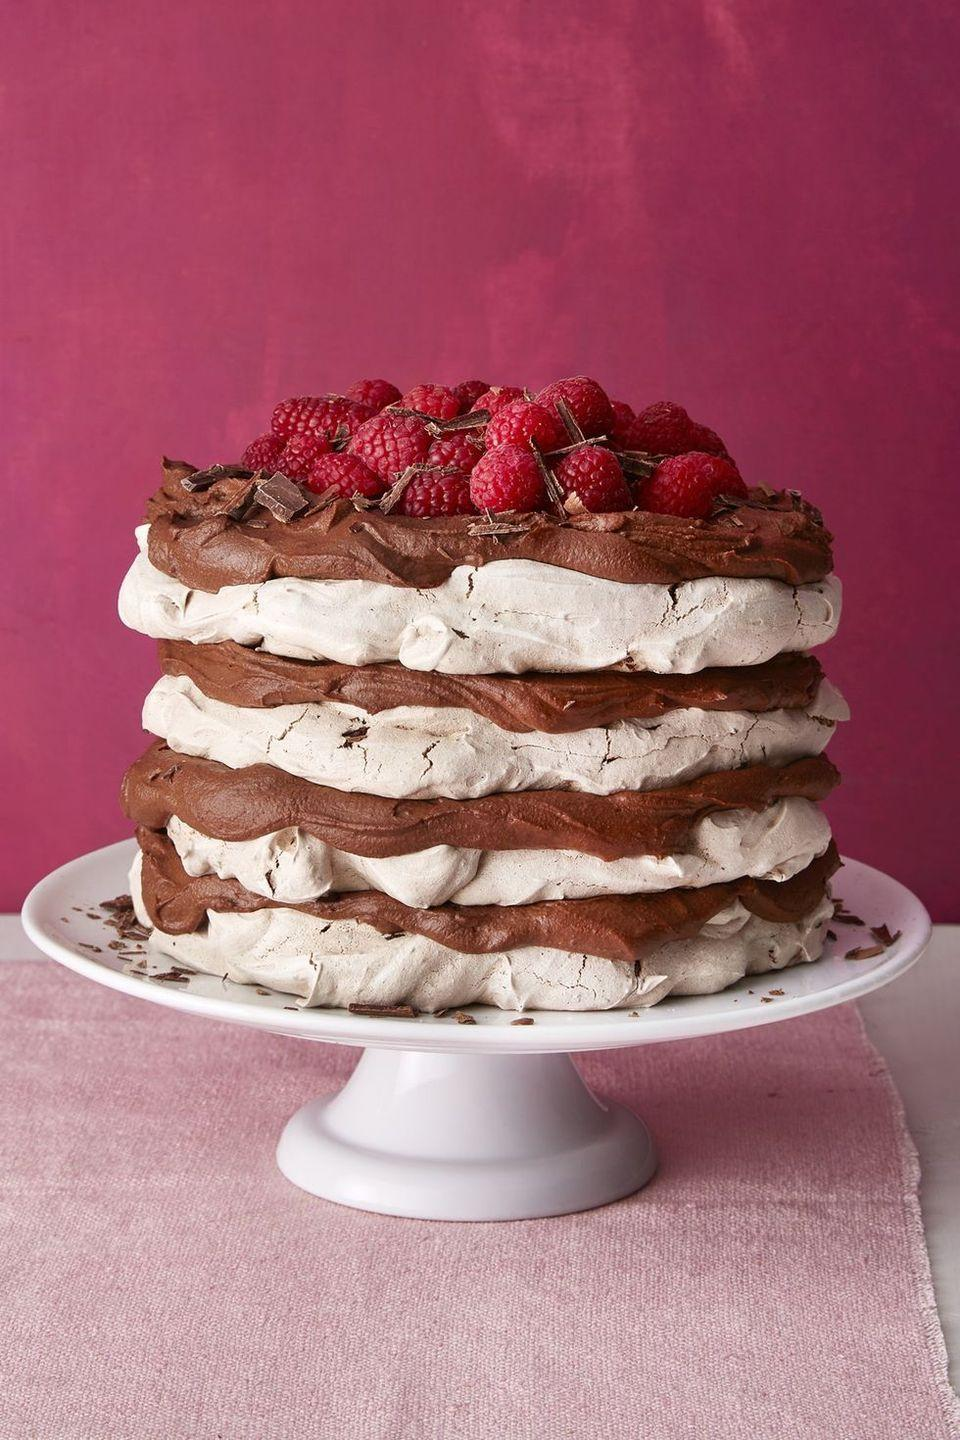 """<p>Rich chocolate mousse sandwiched between crispy meringue layers gets a fresh pop from red raspberries.</p><p><em><a href=""""https://www.womansday.com/food-recipes/food-drinks/a19124220/chocolate-meringue-layer-cake-recipe/"""" rel=""""nofollow noopener"""" target=""""_blank"""" data-ylk=""""slk:Get the recipe from Woman's Day »"""" class=""""link rapid-noclick-resp"""">Get the recipe from Woman's Day »</a></em></p>"""